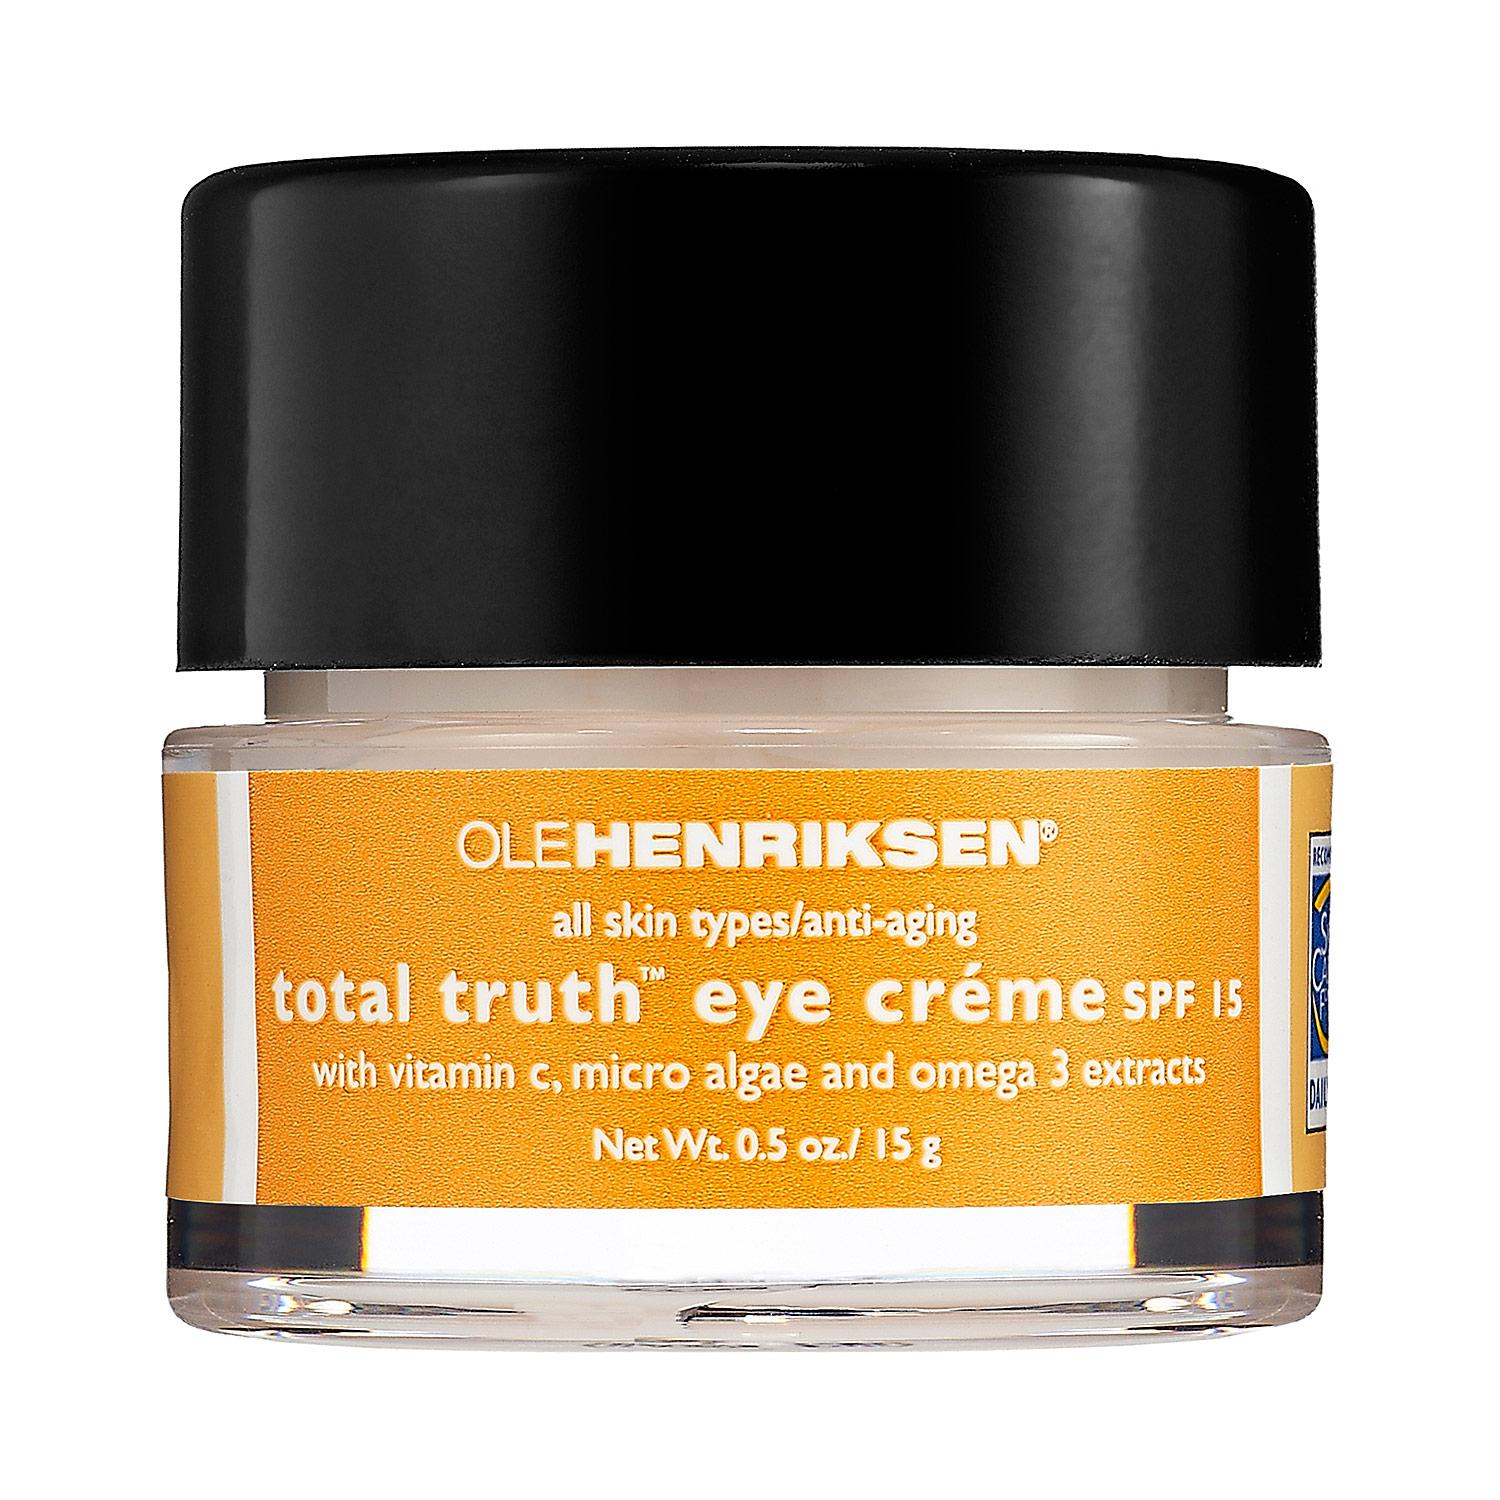 Total Truth™ Vitamin C Eye Crème SPF 15